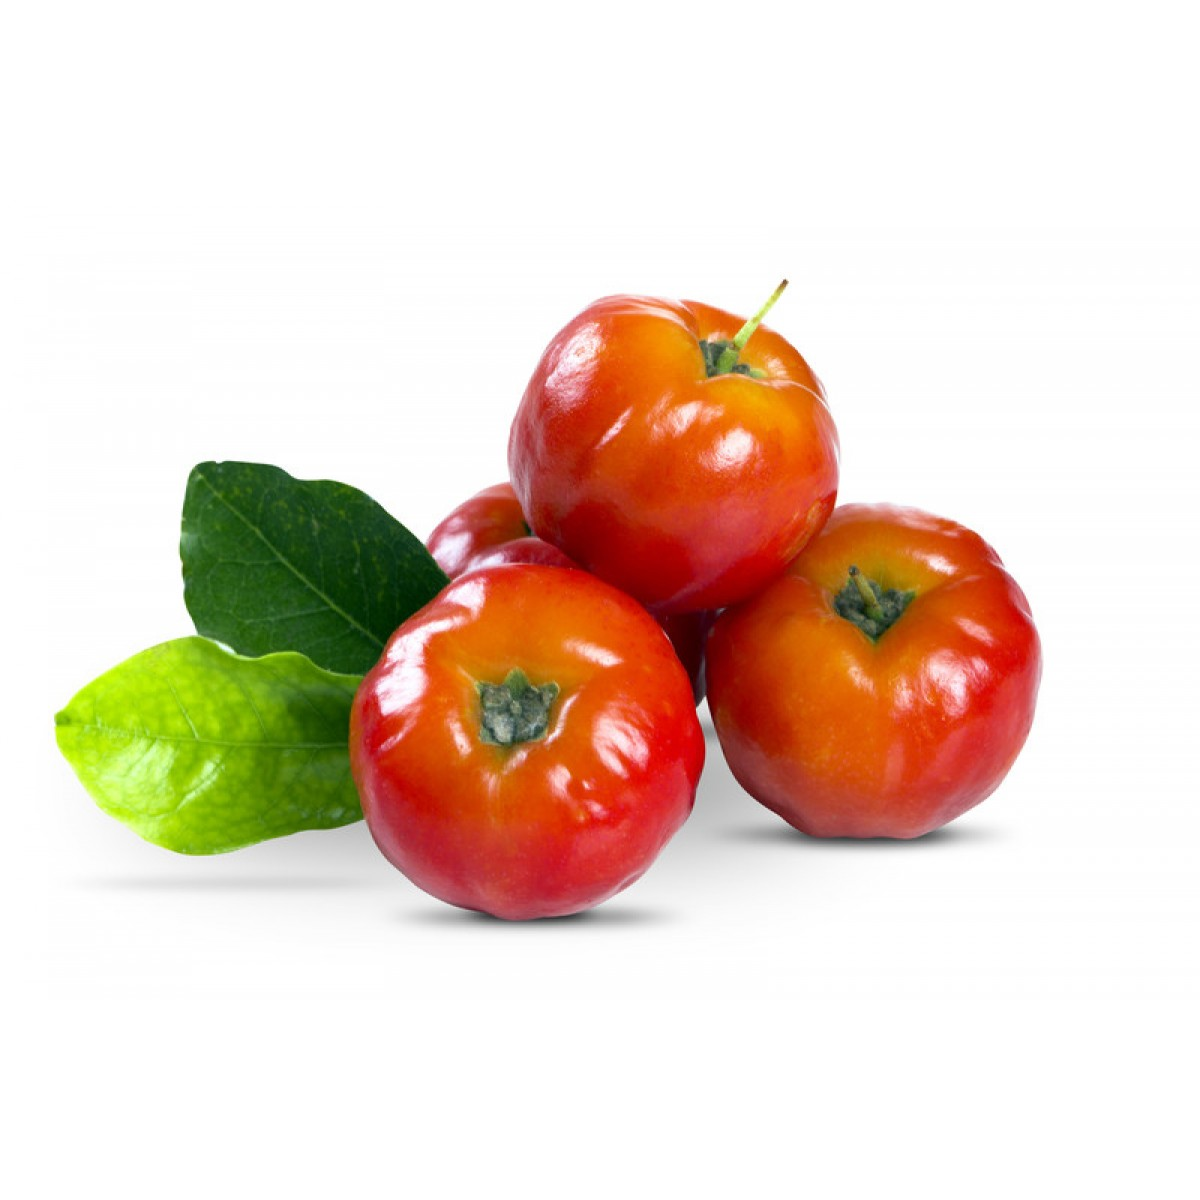 acerola_cherry_organic_extract_uk_eu.jpg